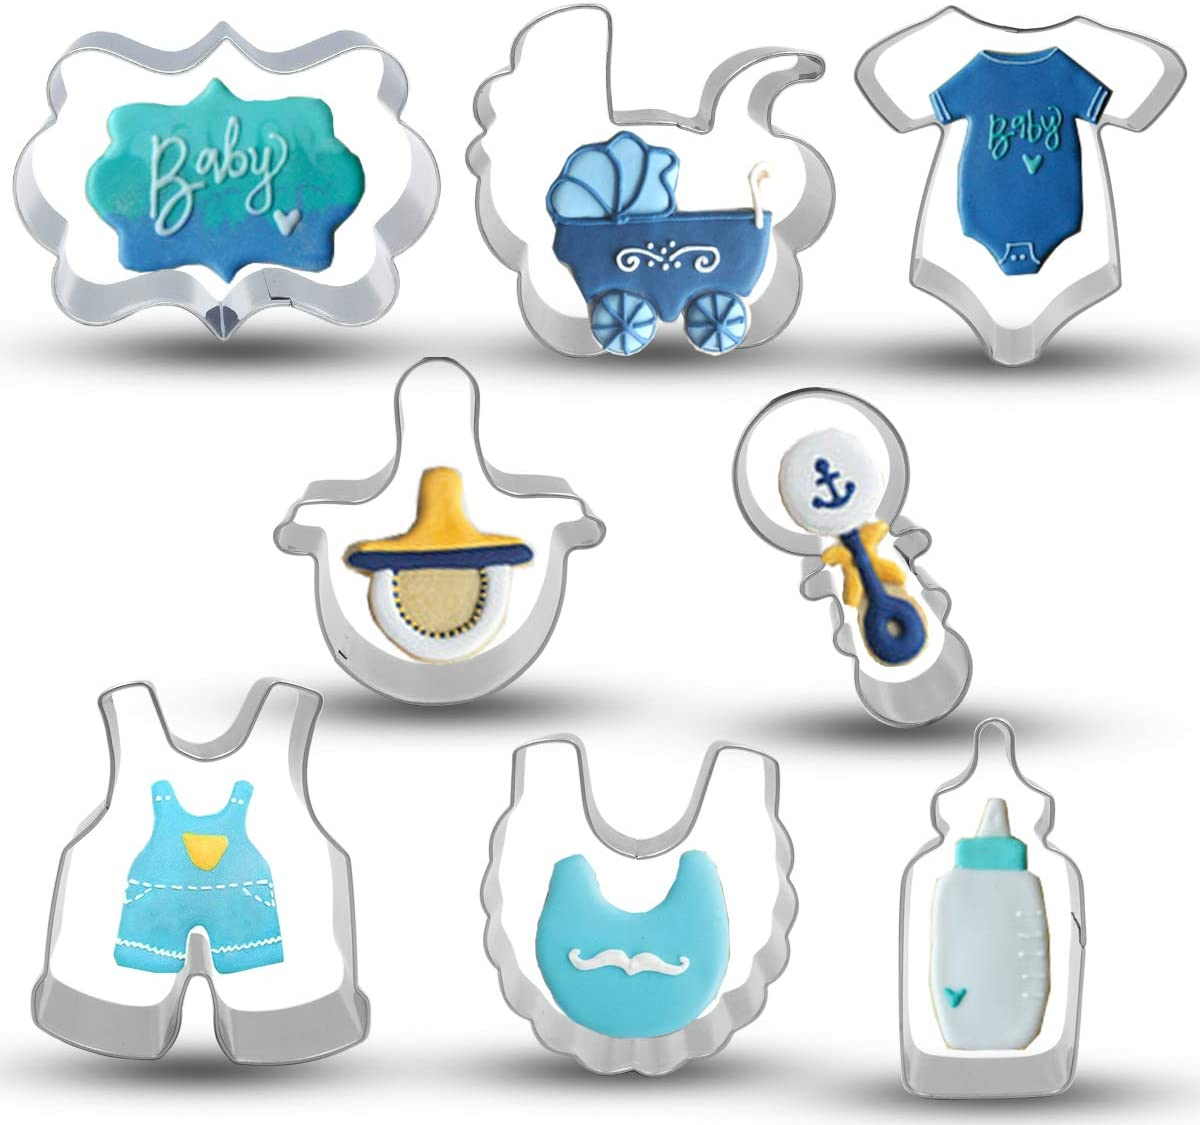 Bonropin Baby Shower Cookie Cutter Set - 8 Piece Stainless Steel Cutters Molds Cutters for Making Onesie, Bib, Rattle, Bottle, Nipple, Brand, Baby Carriage, Baby Pants